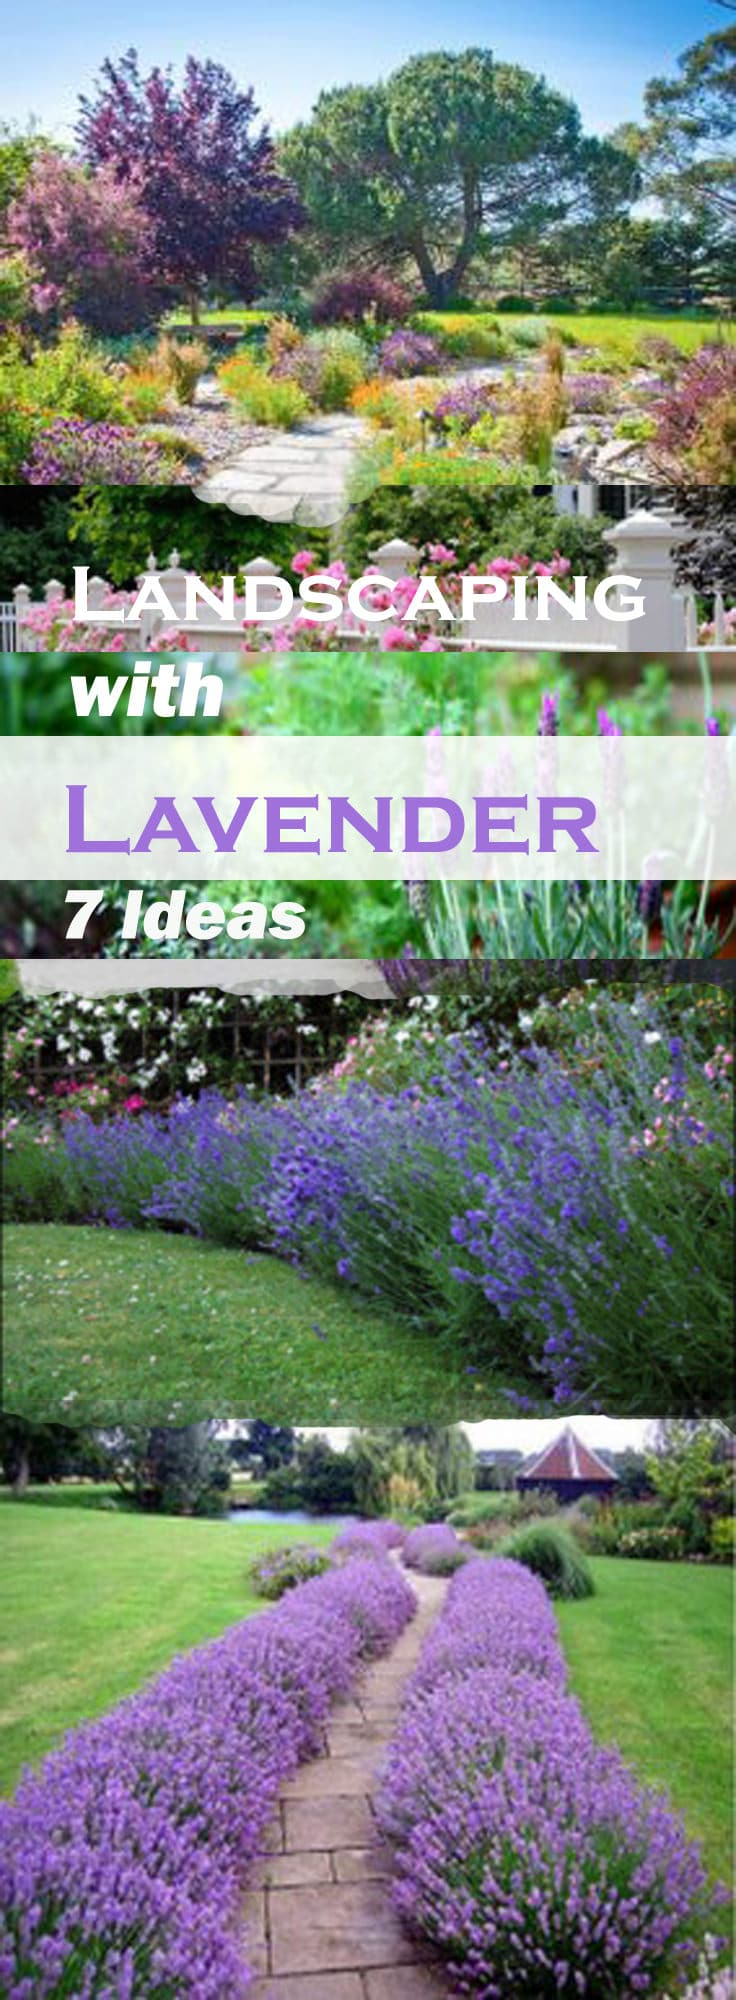 Landscaping with lavender 7 garden design ideas for Pictures of landscaping ideas